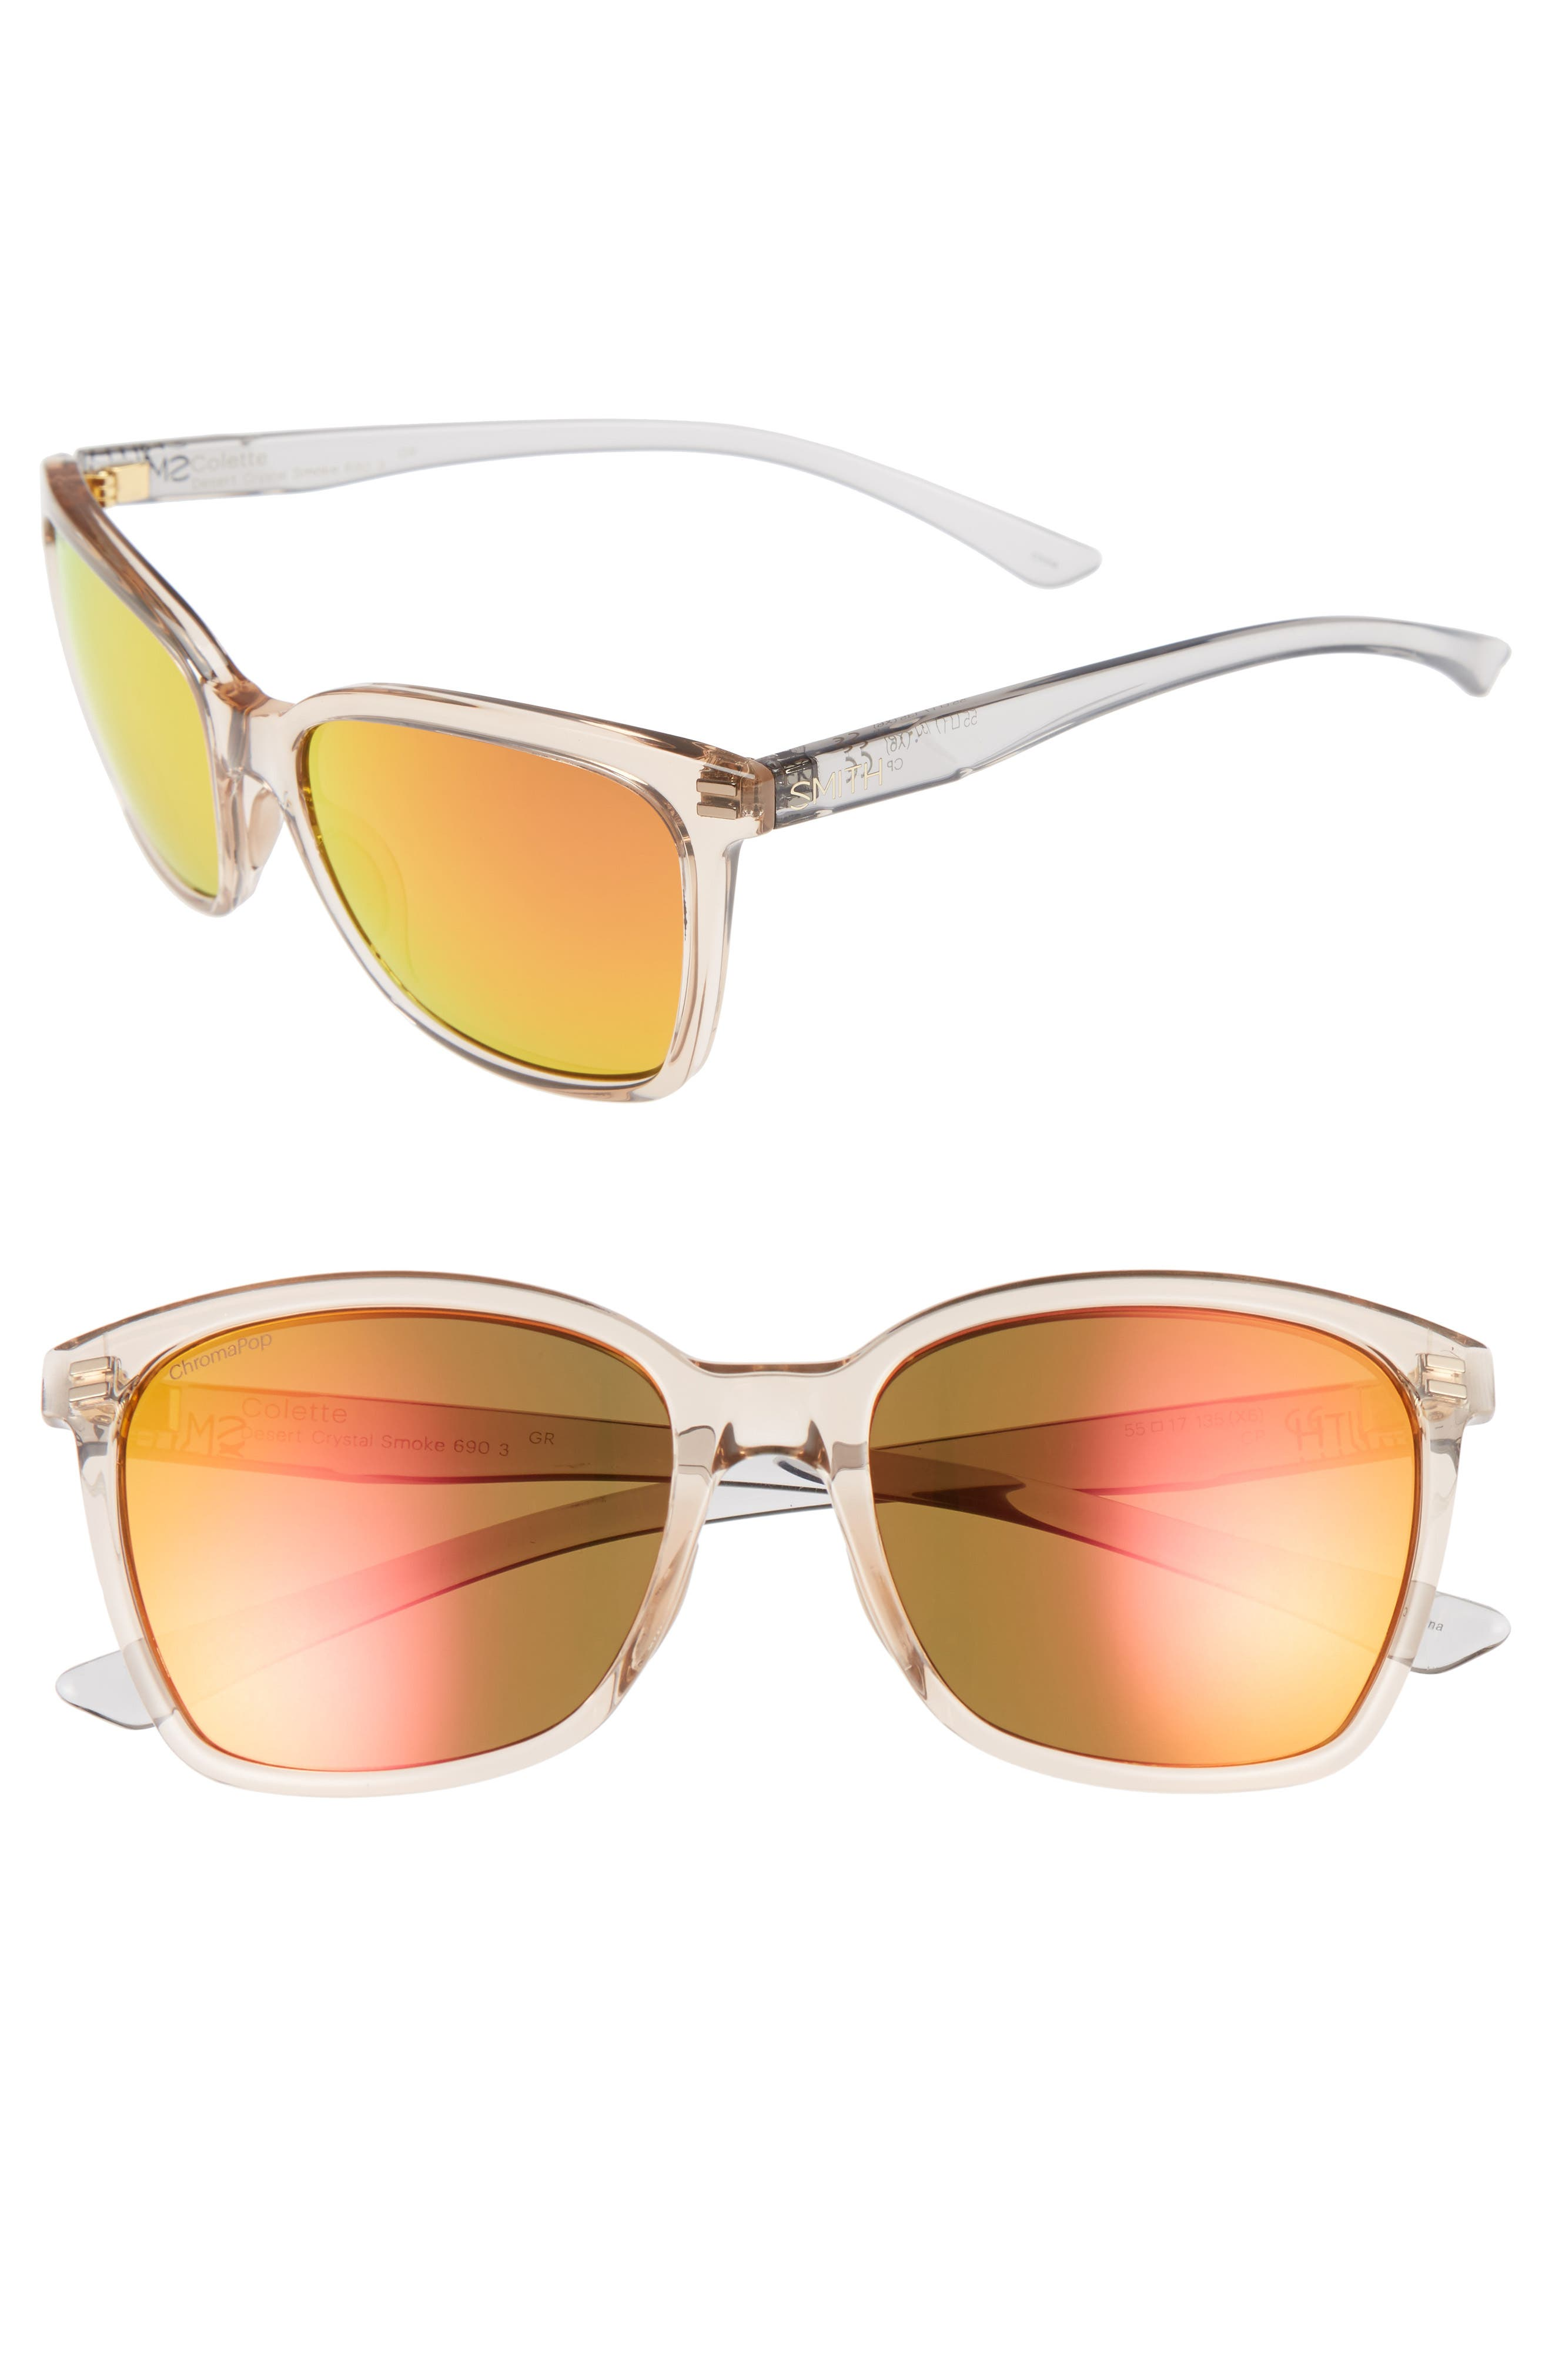 Colette Chromapop 55mm Polarized Mirrored Lens Sunglasses,                             Main thumbnail 1, color,                             250